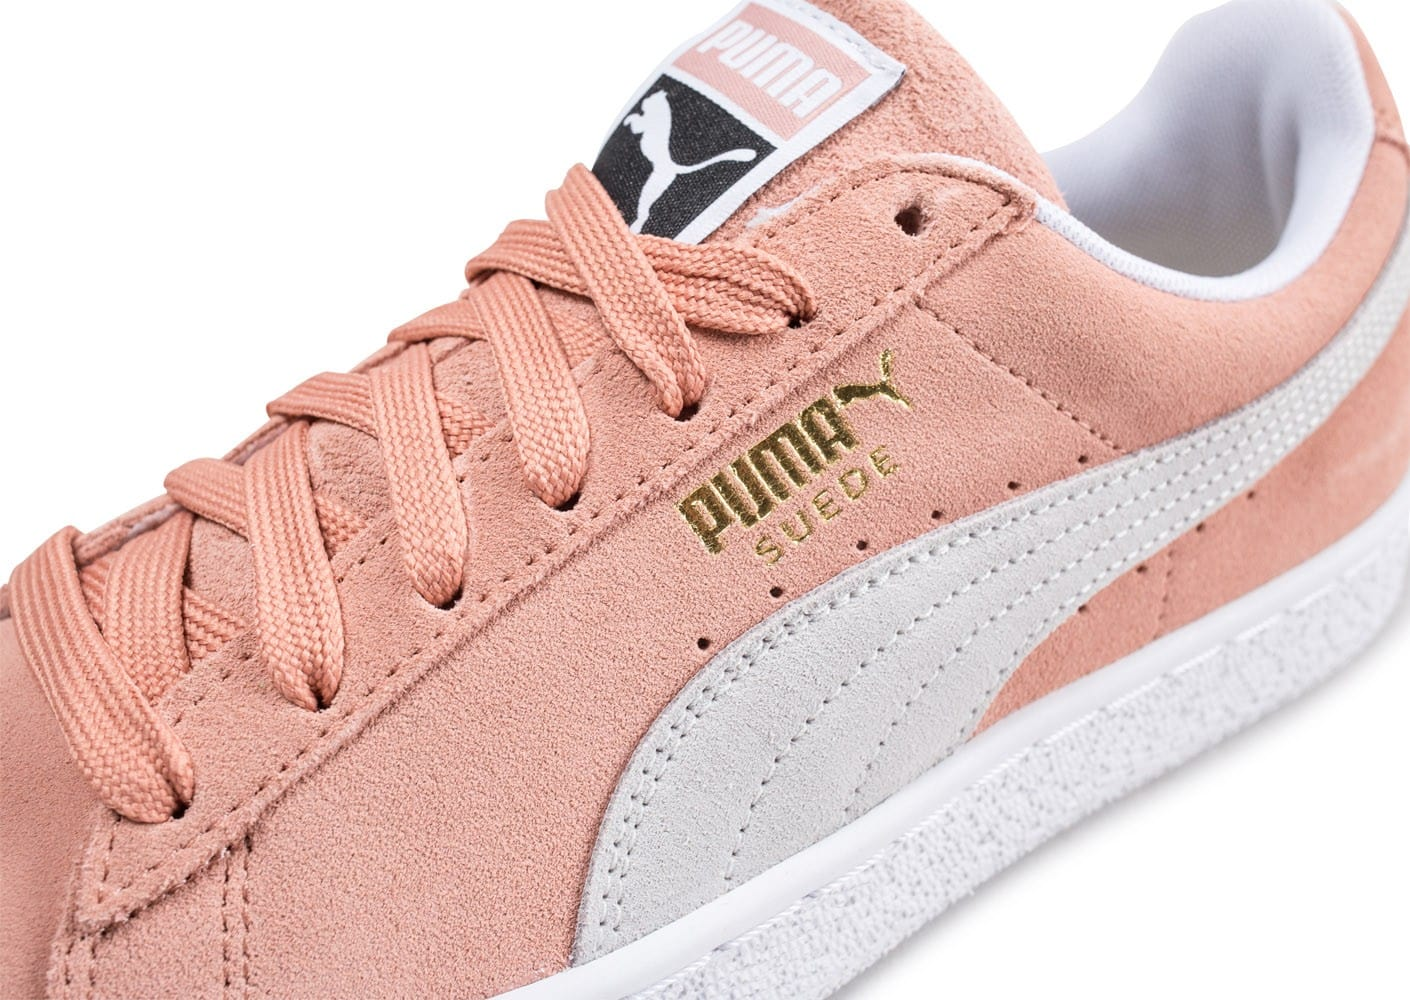 tout neuf 2ecef 6a469 Puma Suede Classic rose saumon - Chaussures Baskets homme ...